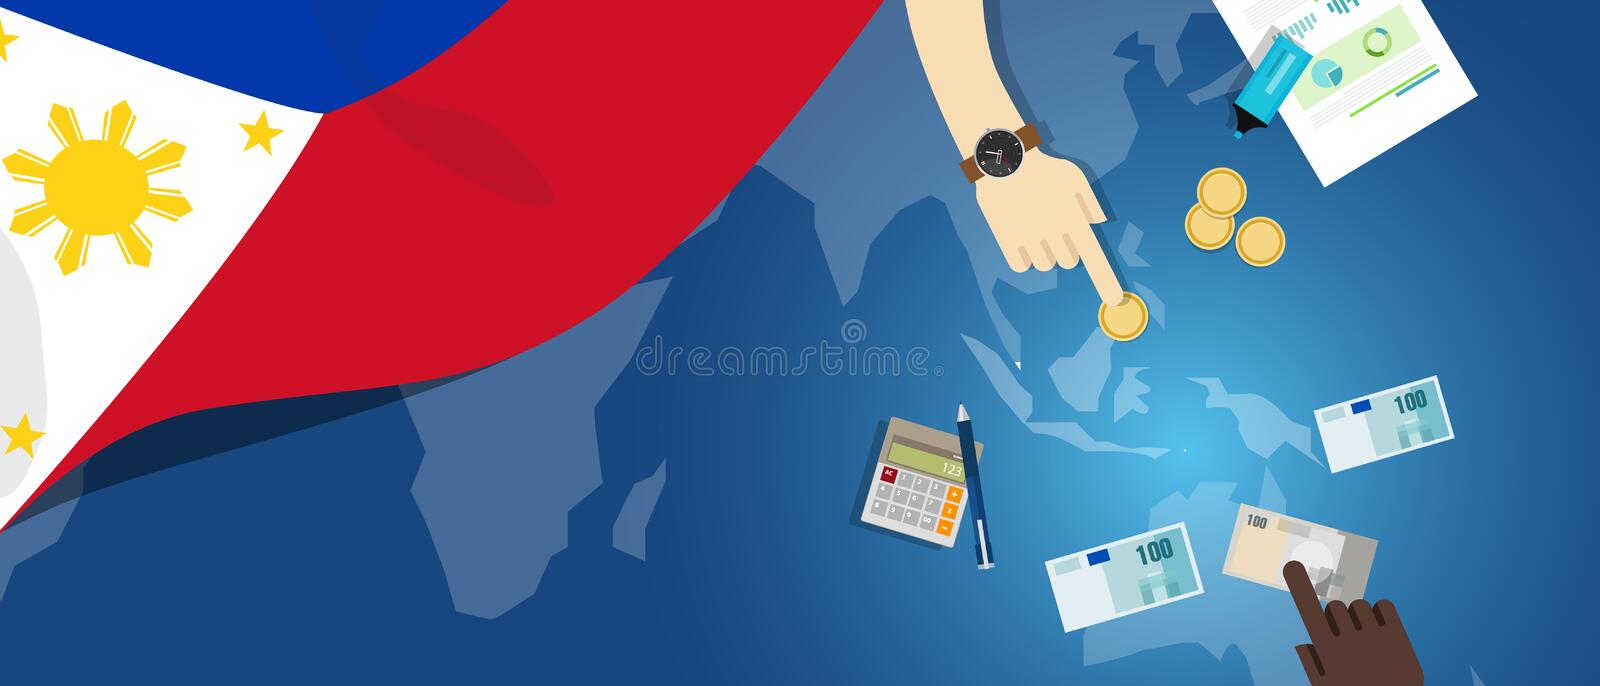 Philippines economy fiscal money trade concept illustration of financial banking budget with flag map and currency. Vector royalty free illustration